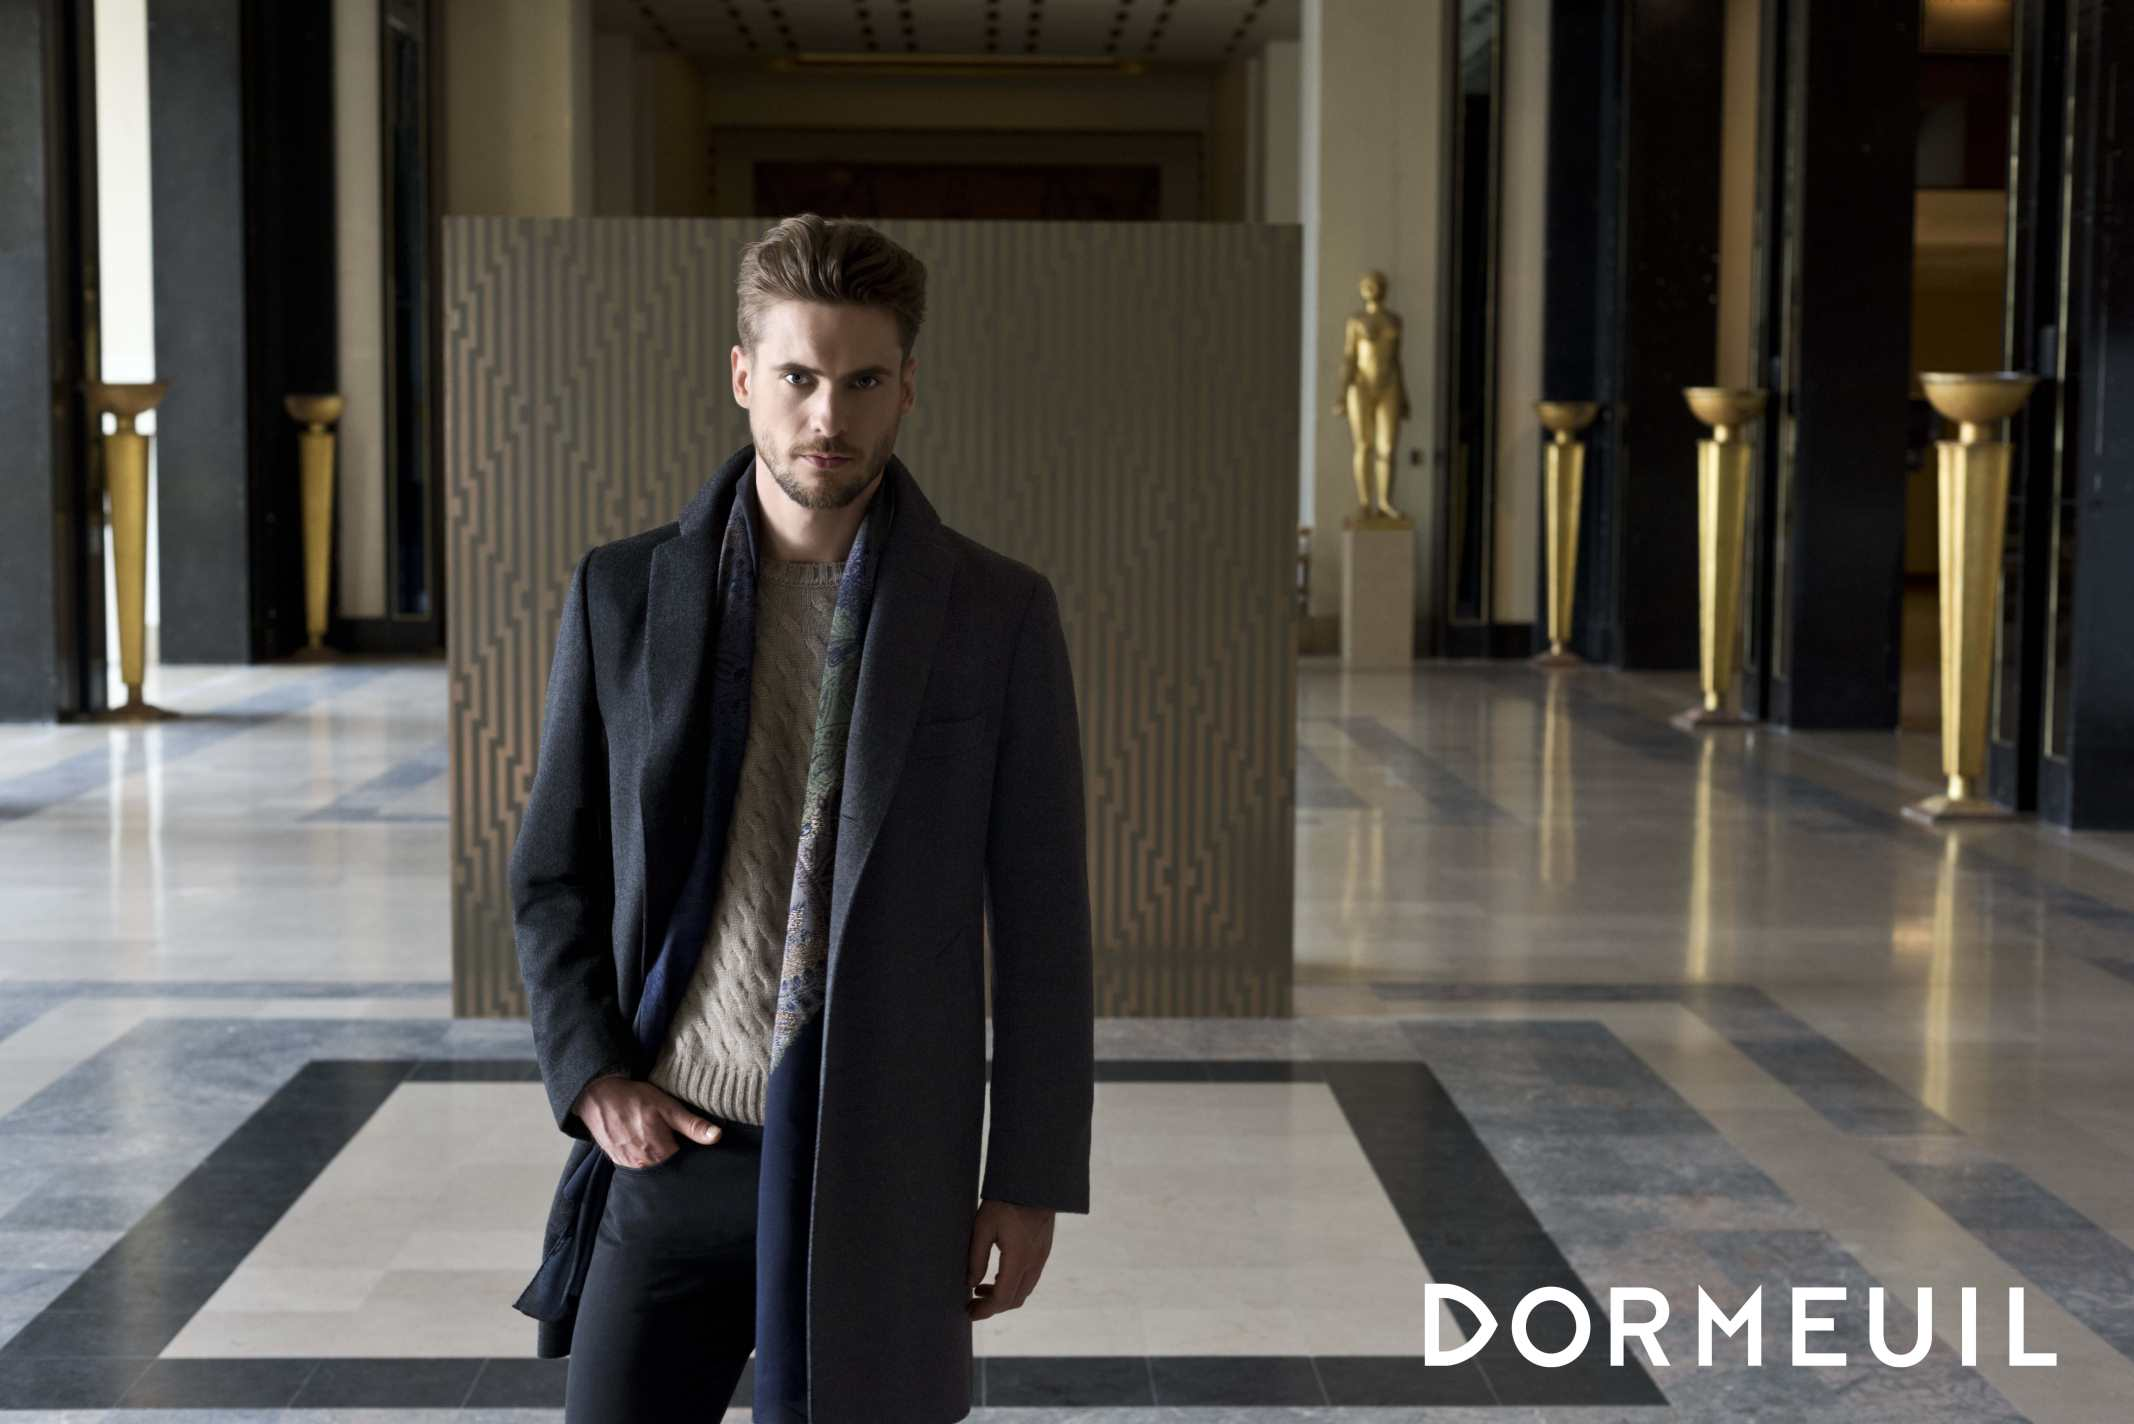 aurore-donguy-dormeuil-3